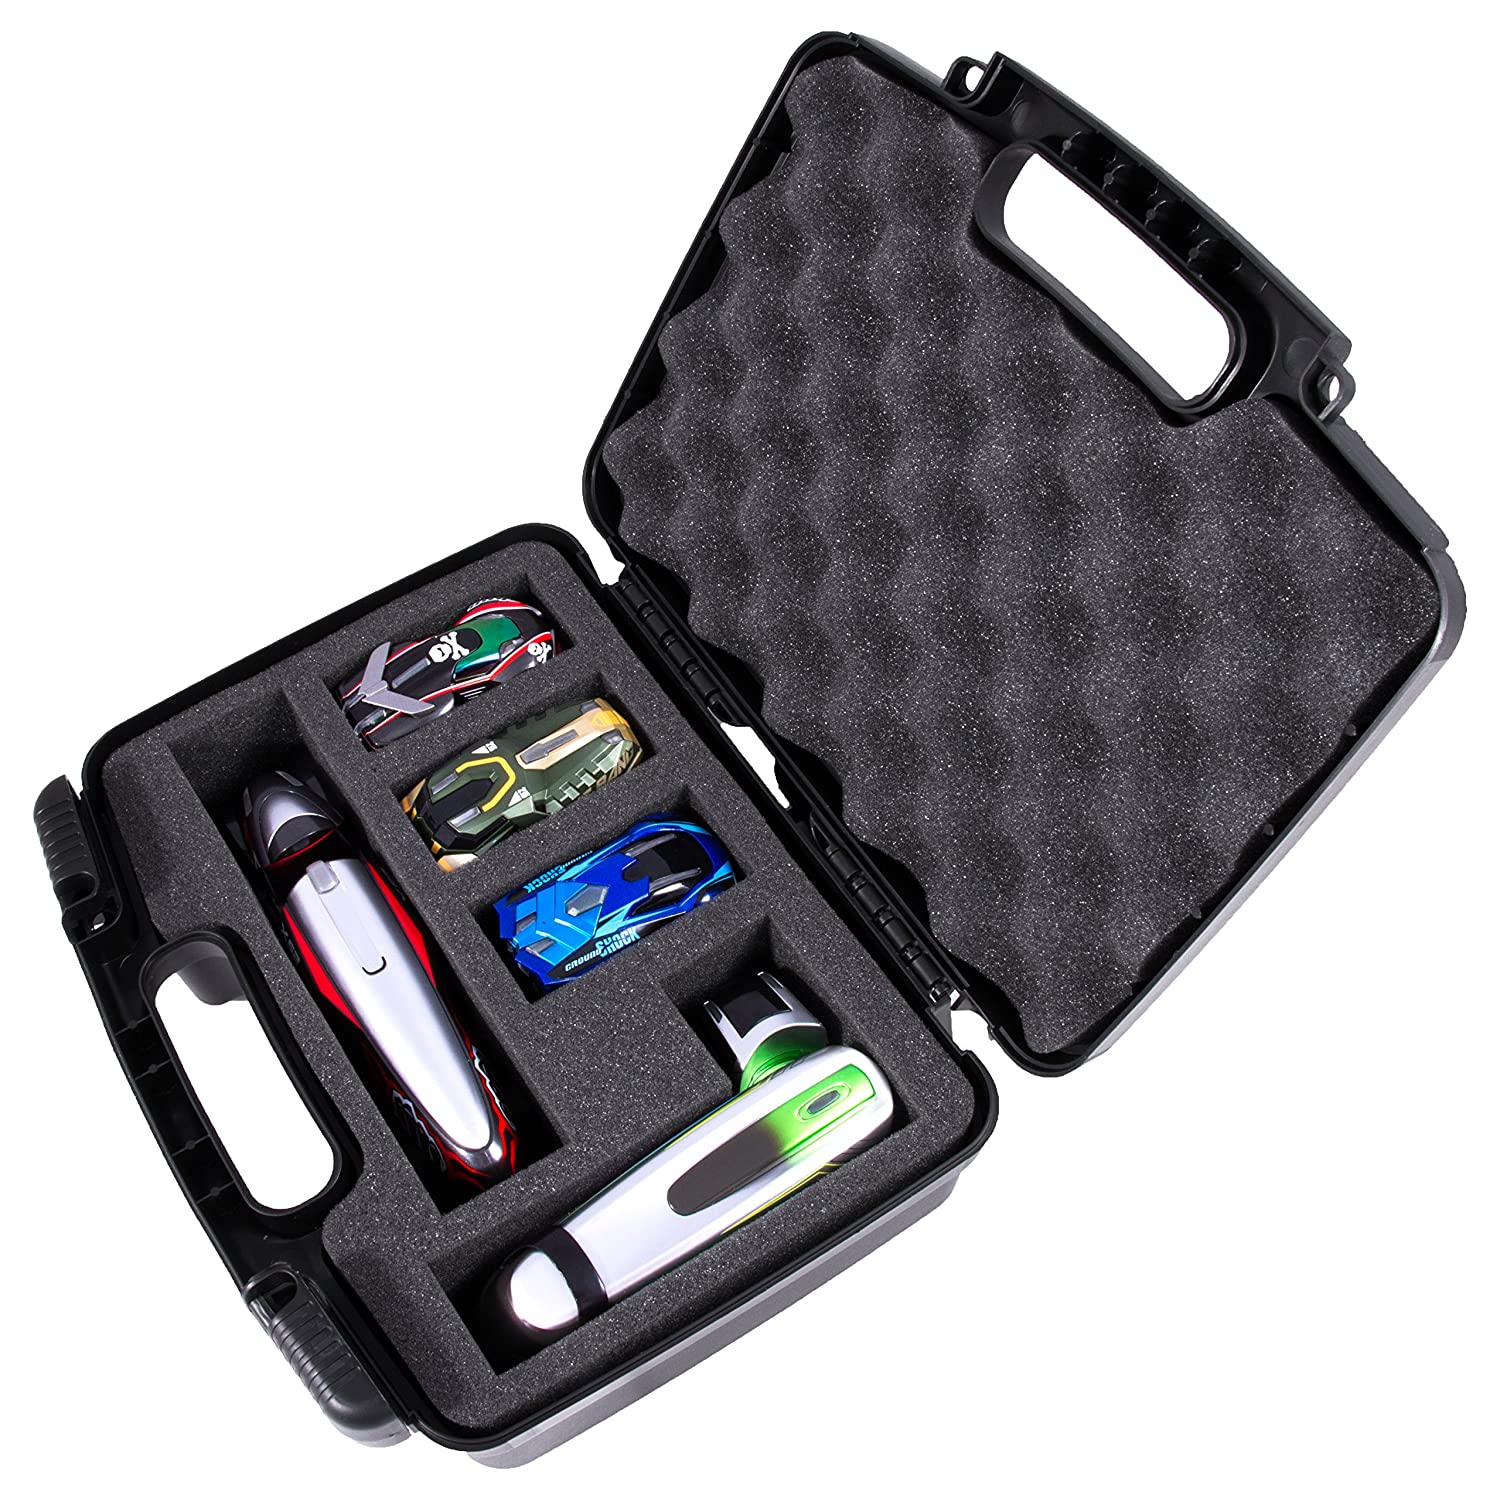 GARAGE Box Case Designed For Anki Overdrive Expansion Cars and Supertruck Vehicles – Pre-Cut Protective Compartments Can Carry 7 Cars or 3 Cars With 2 Supertrucks